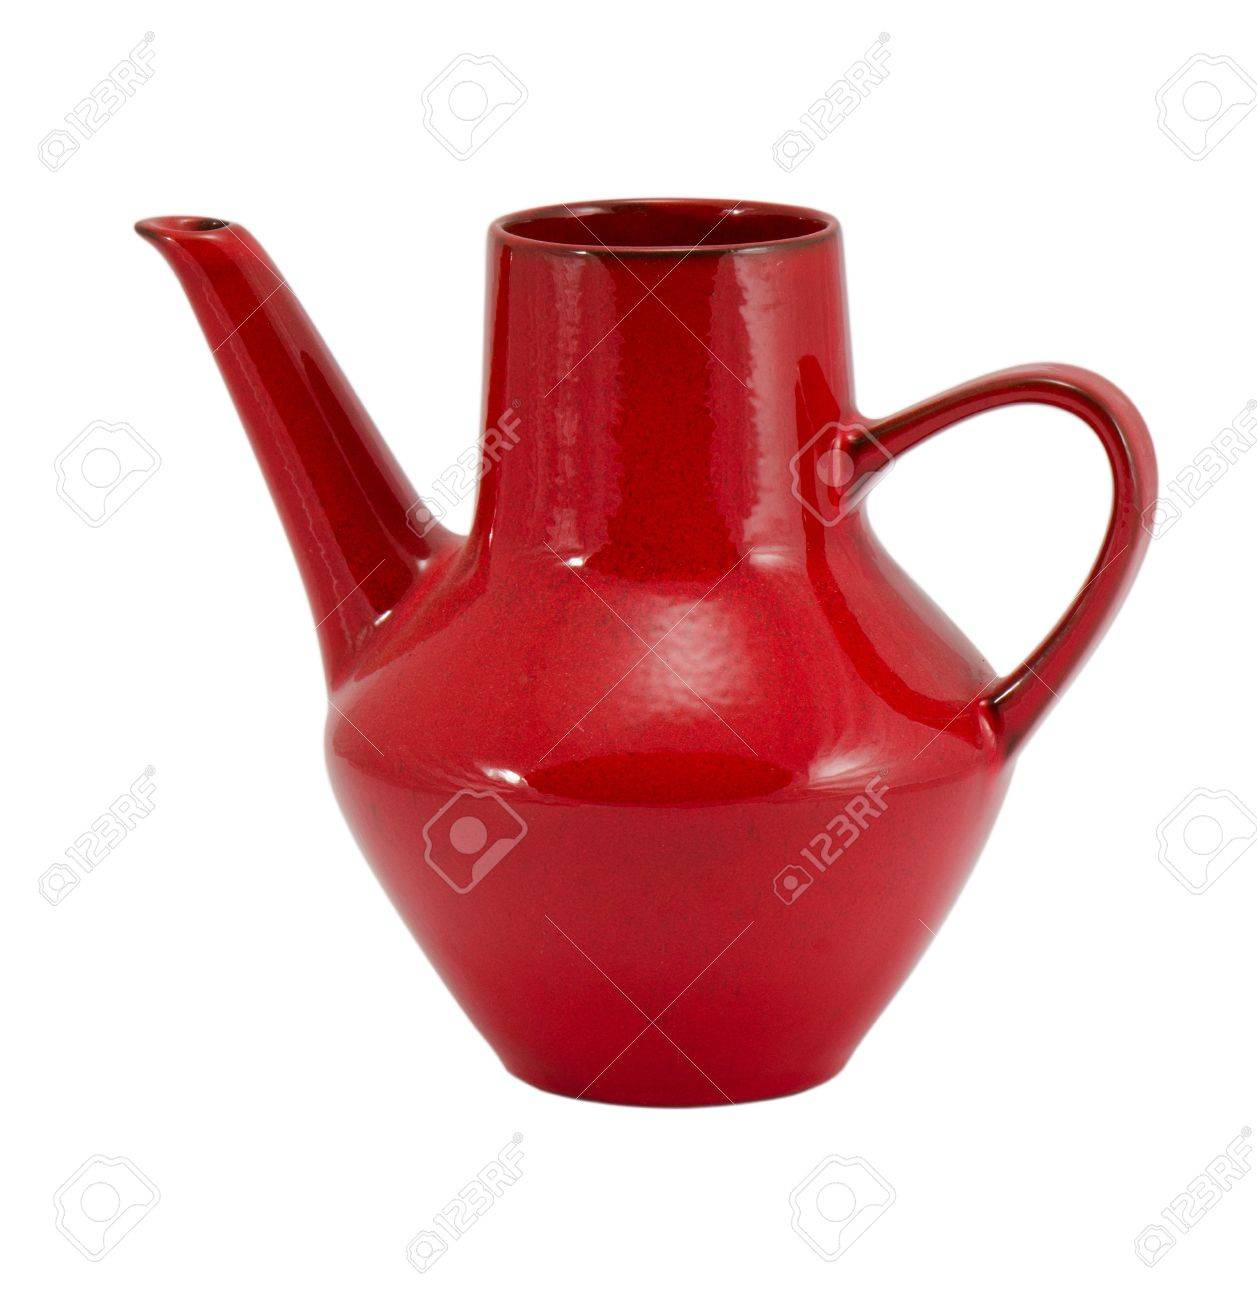 old retro ceramic clay red jug pitcher jar blackjack growler teapot with handle isolated on white background Stock Photo - 17252905